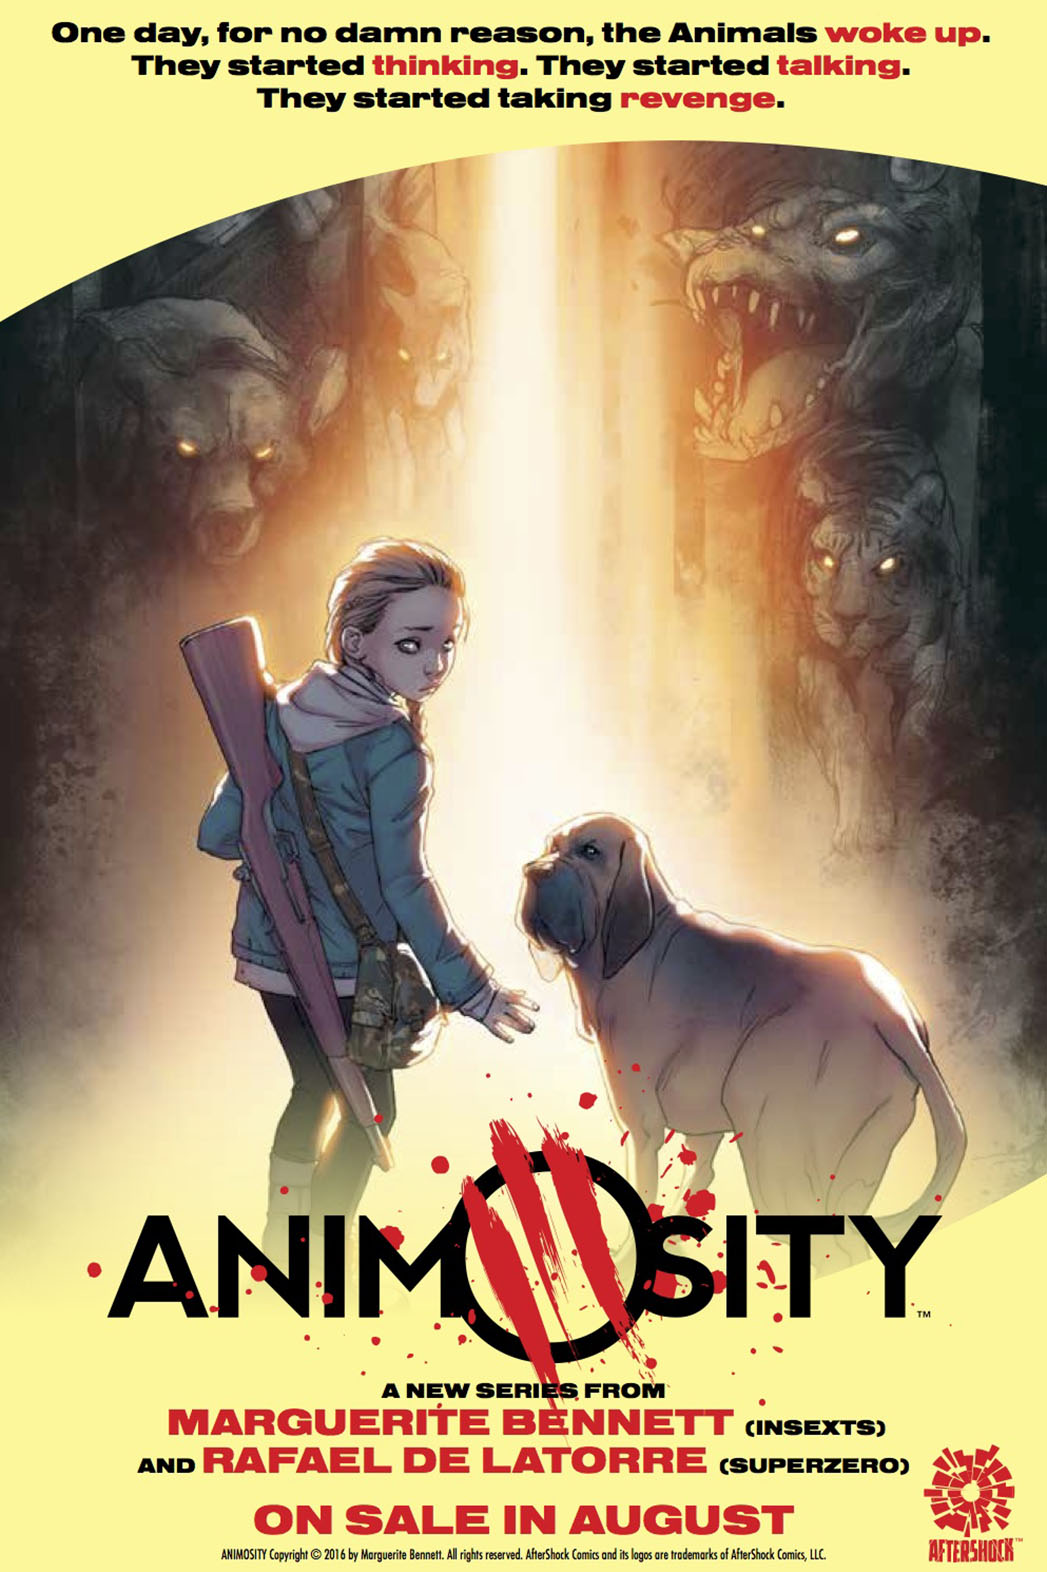 Animosity-AfterShock Comics-Ad-P 2016